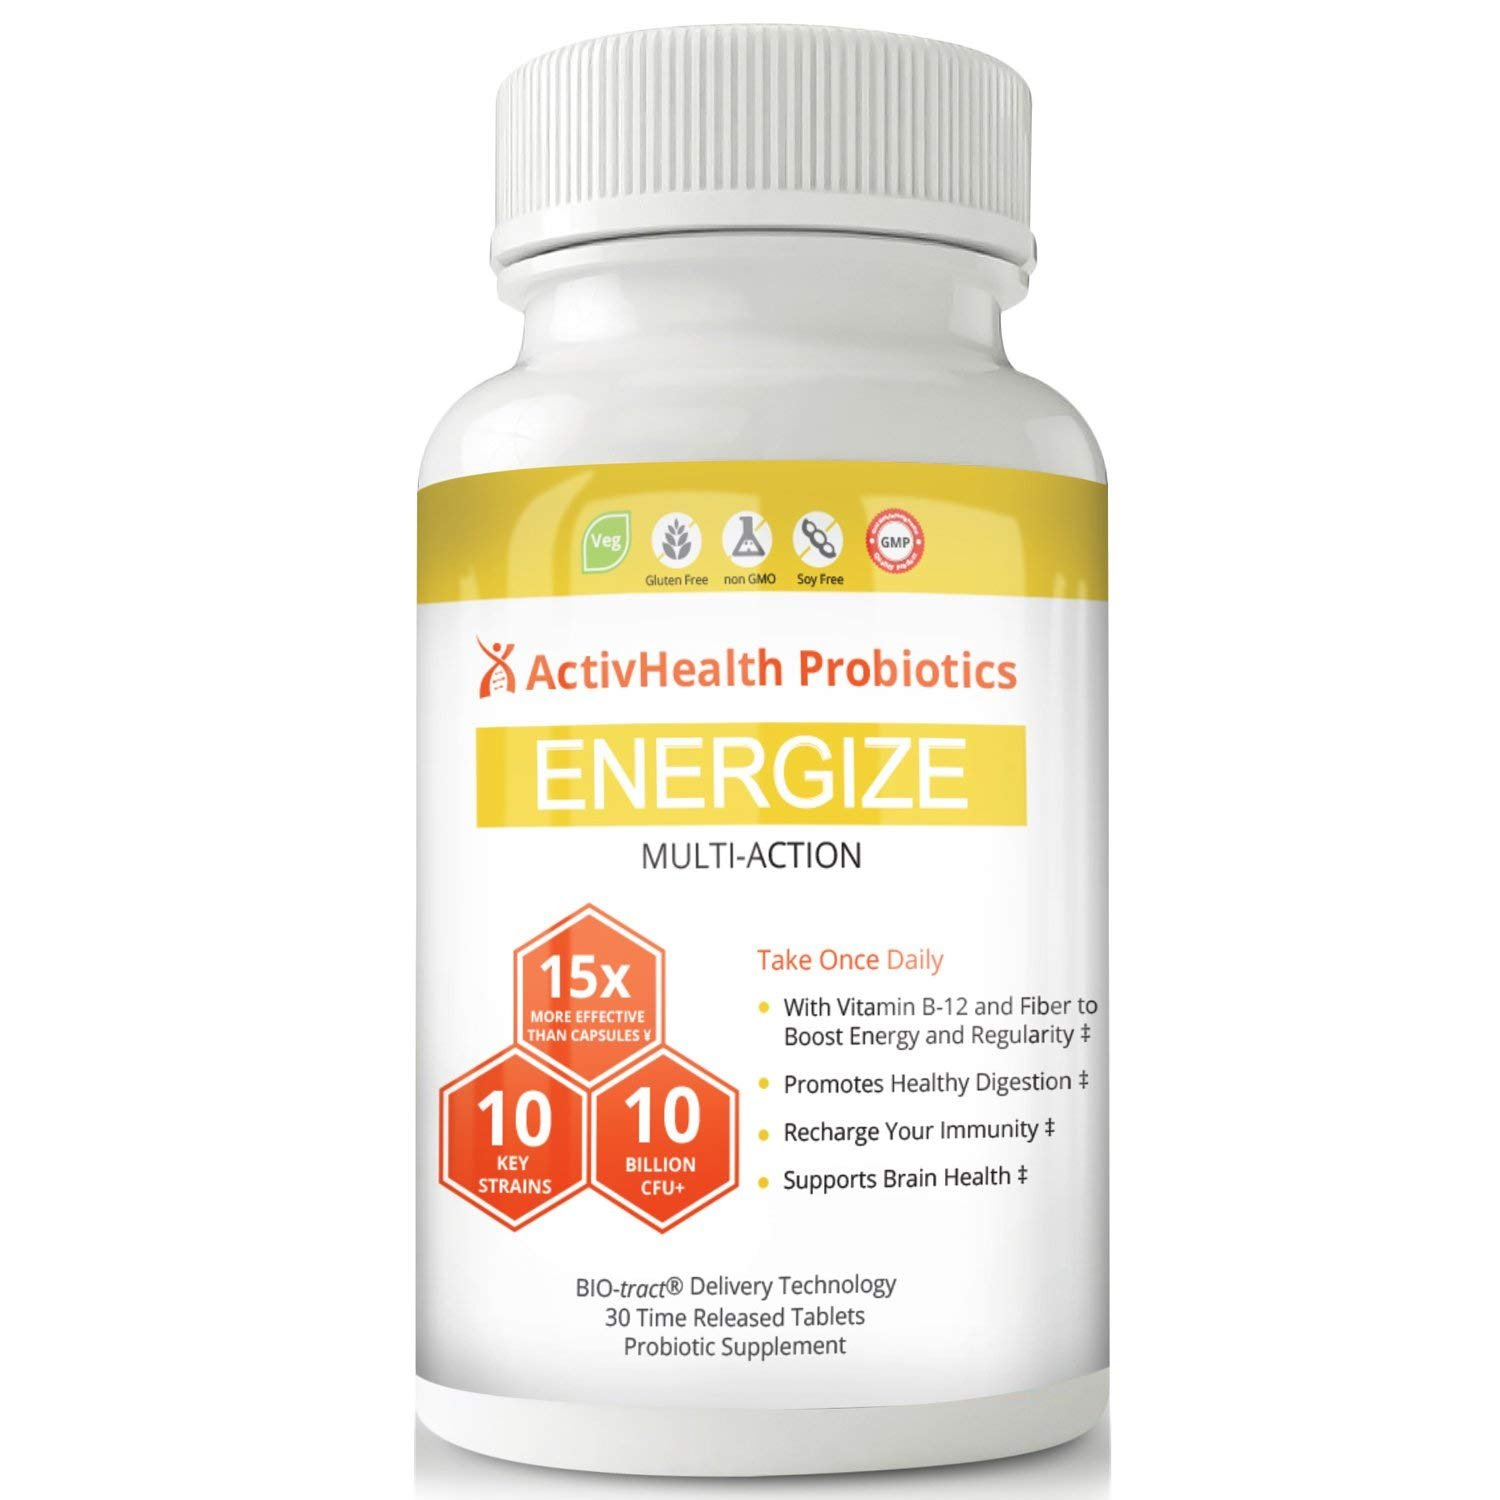 PROBIOTIC w/ Vitamin B12 DOCTOR APPROVED - ENERGIZE PROBIOTICS to Jumpstart Your Day! 150 Billion CFU Efficacy Rate, Probiotic Works 15 Times Stronger to Boost Brain Health, Digestion and Immunity